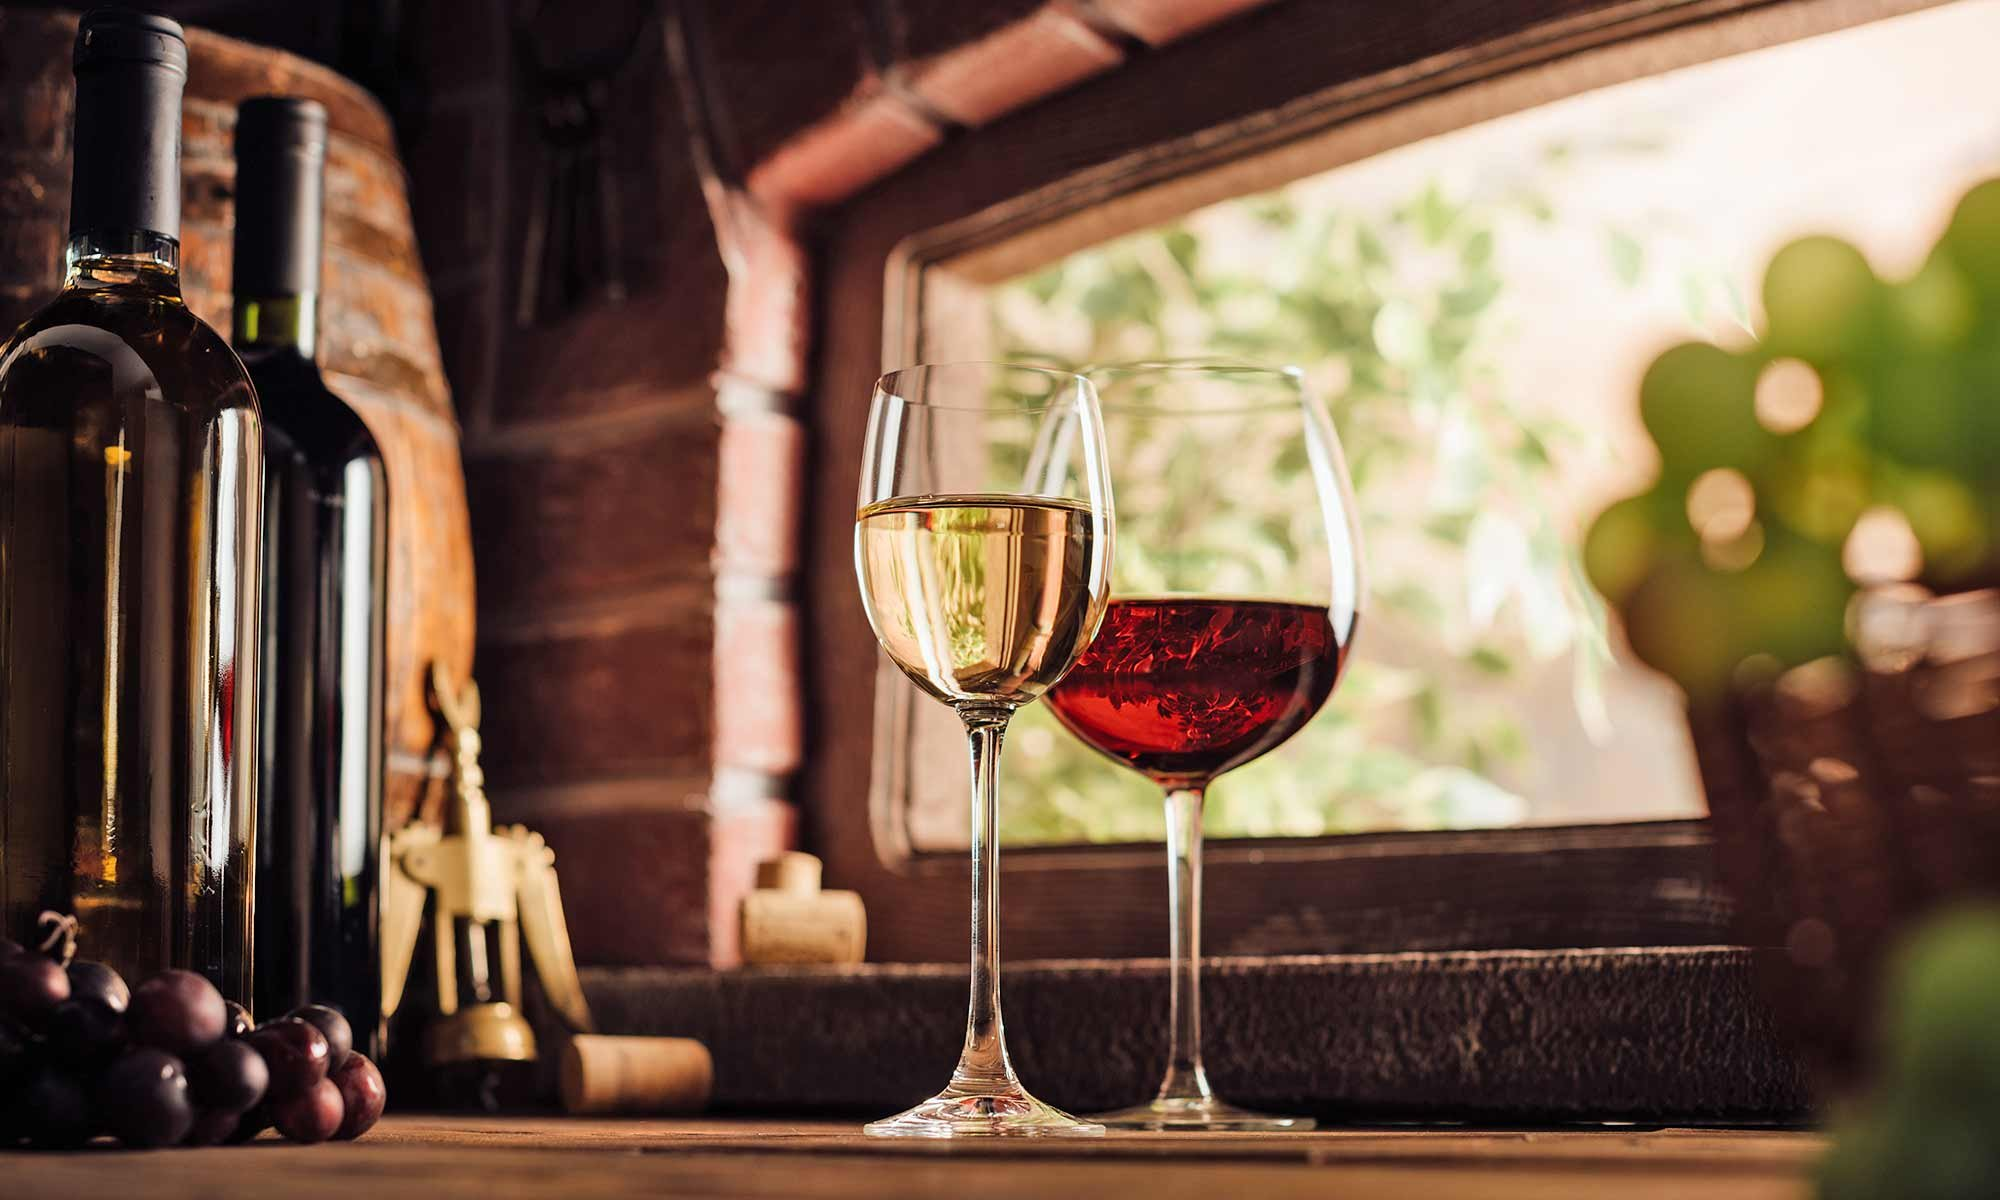 Glasses of white and red wine in windowsill